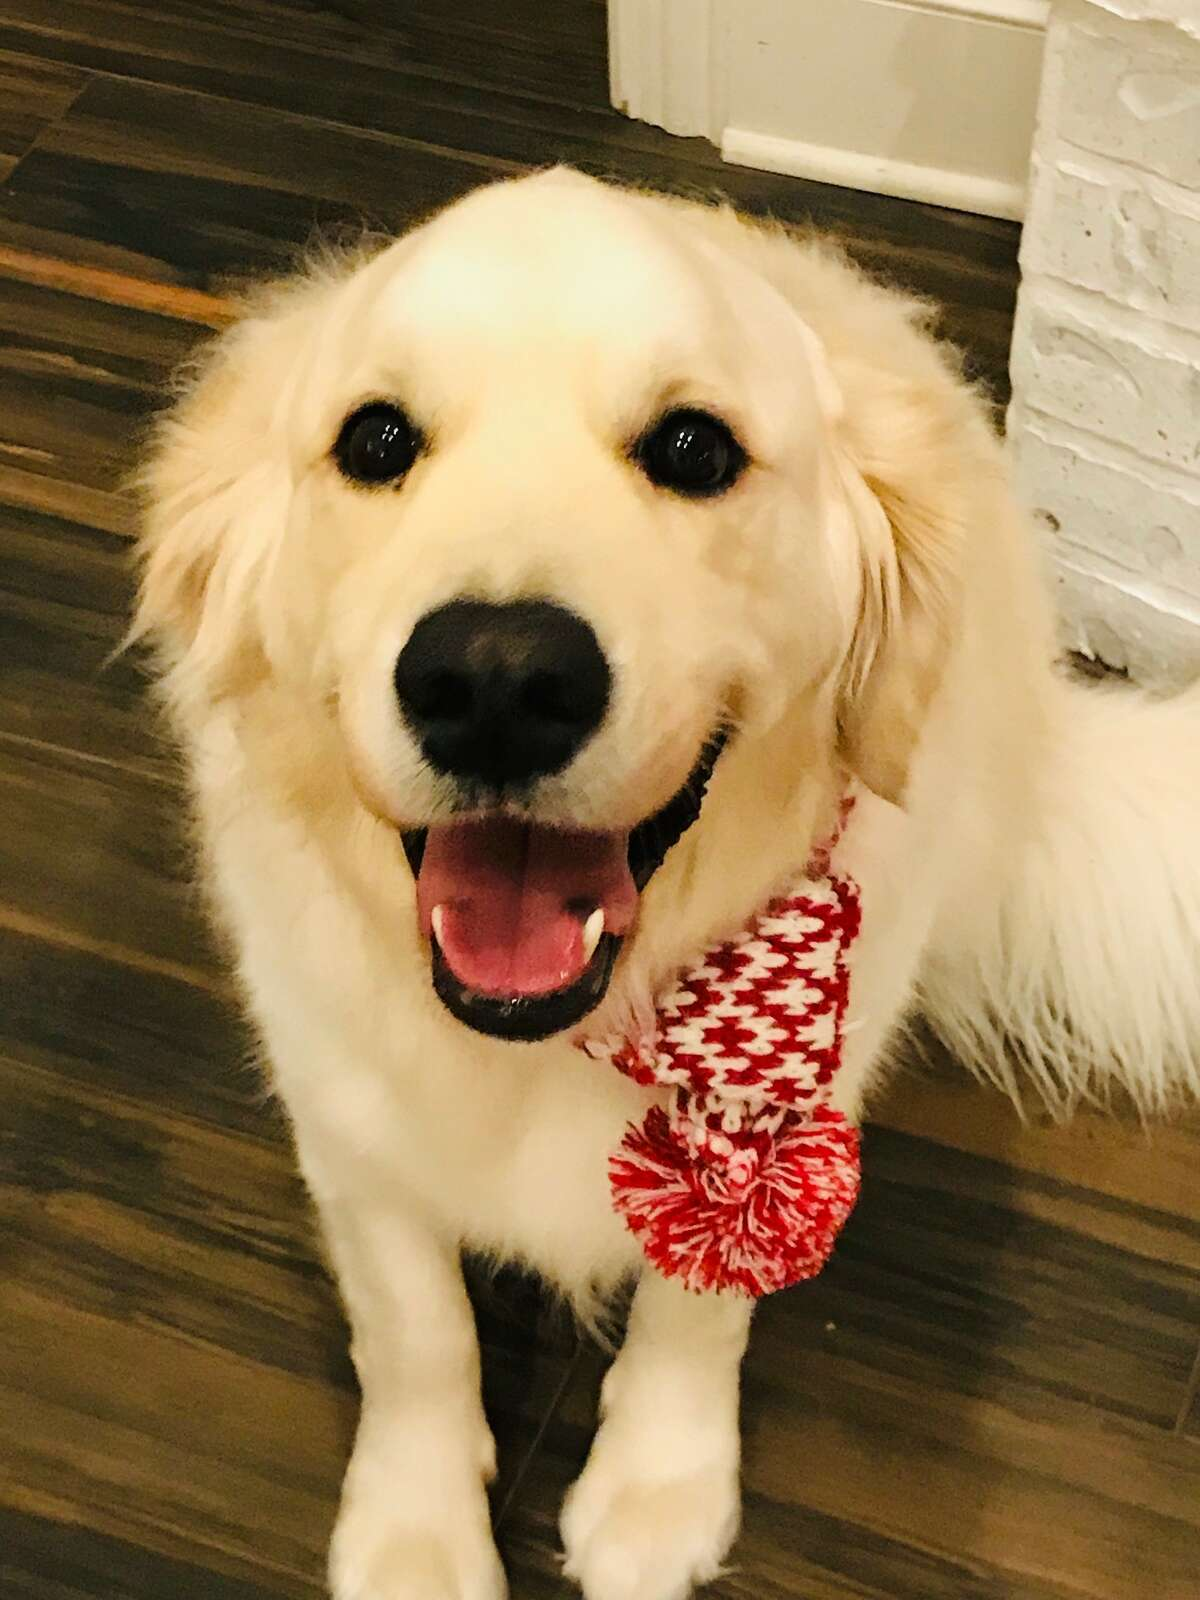 Owner Julie Aasmyr said 4-year-old Golden retriever Duke was a very easy to train dog who loved to please and was adoring of her children.